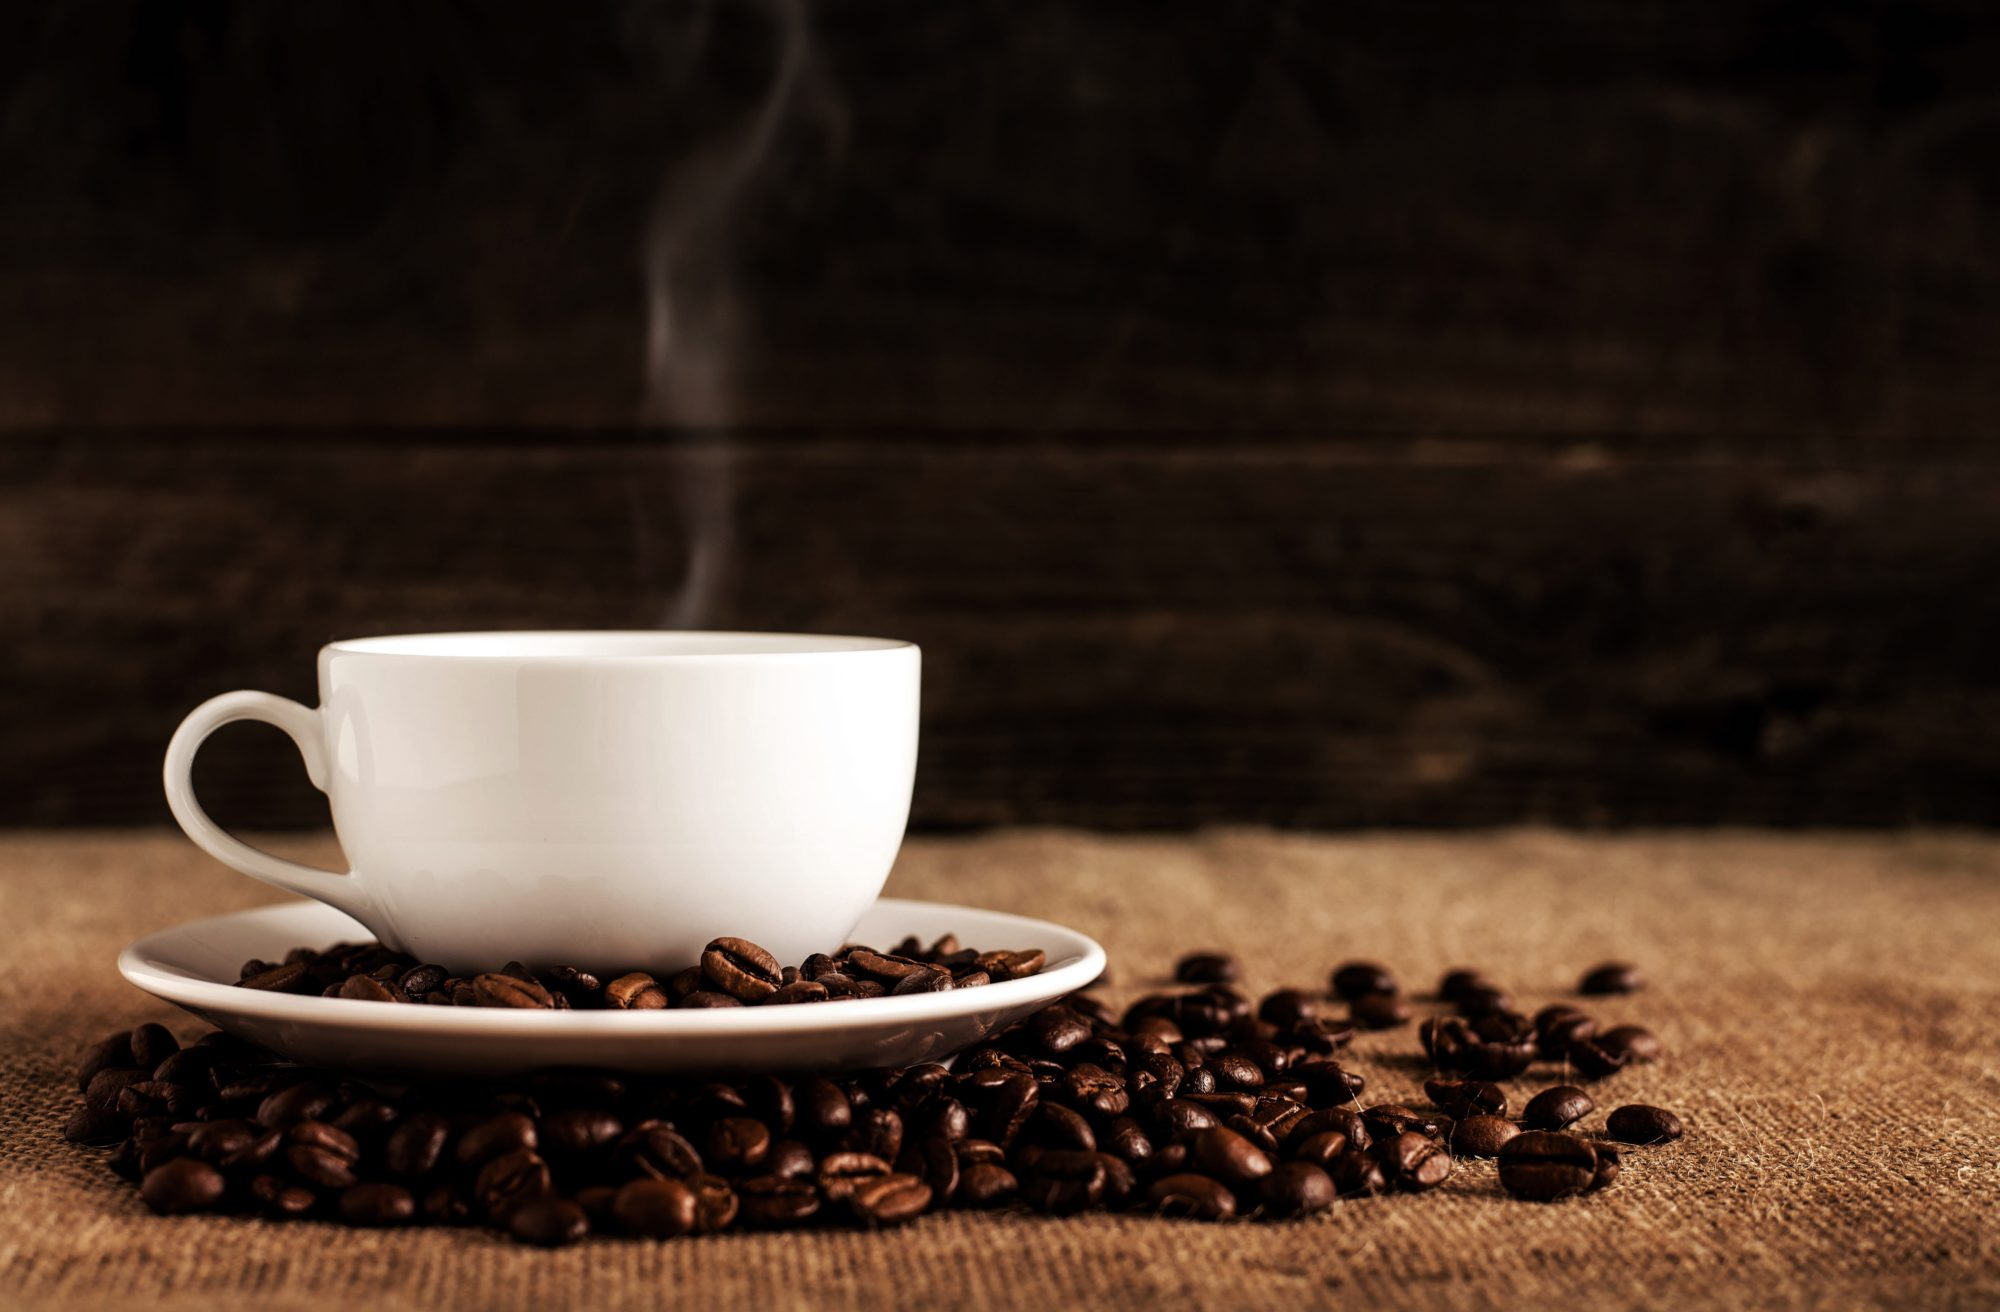 11 Ways That Morning Cup Of Coffee Benefits Your Health